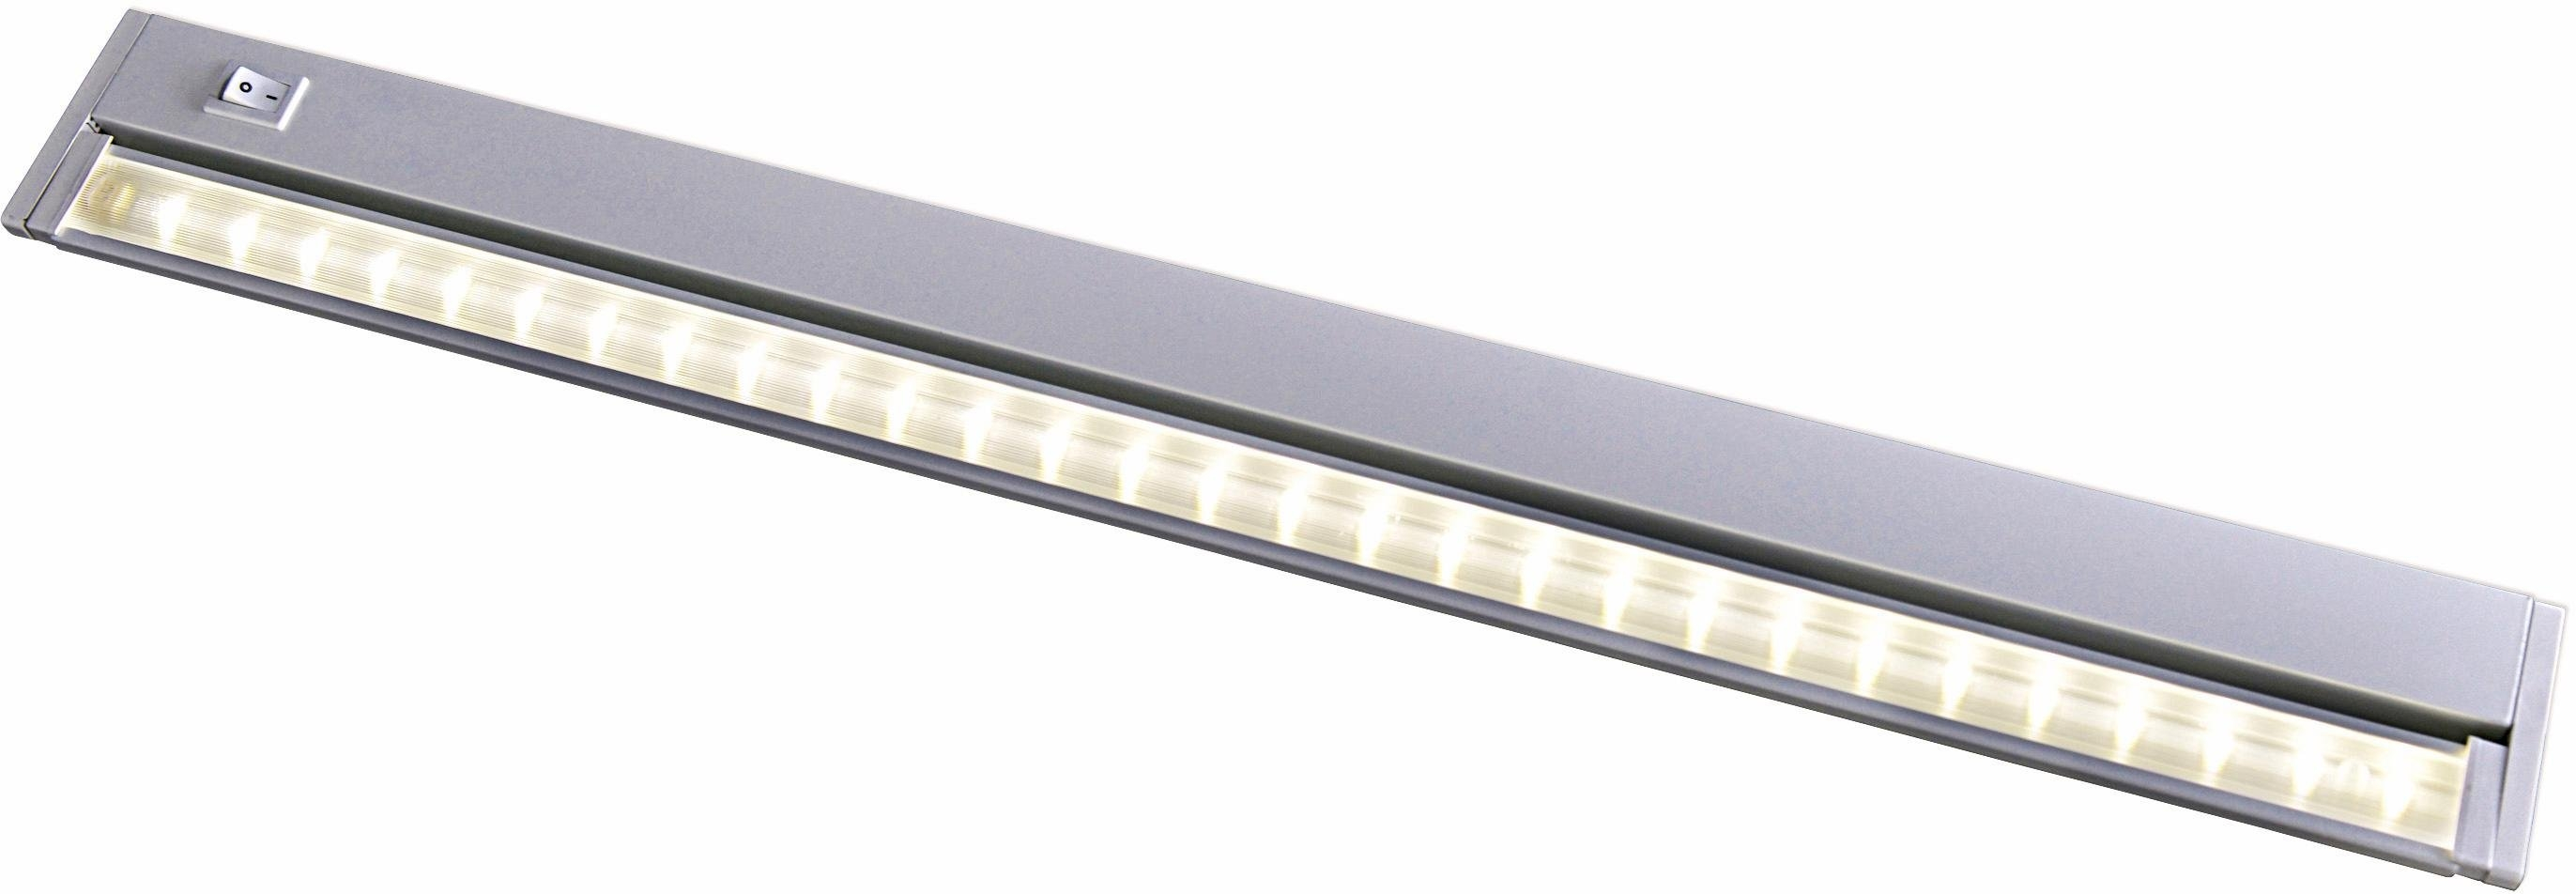 naeve led onderbouwverlichting 586 cm function wit